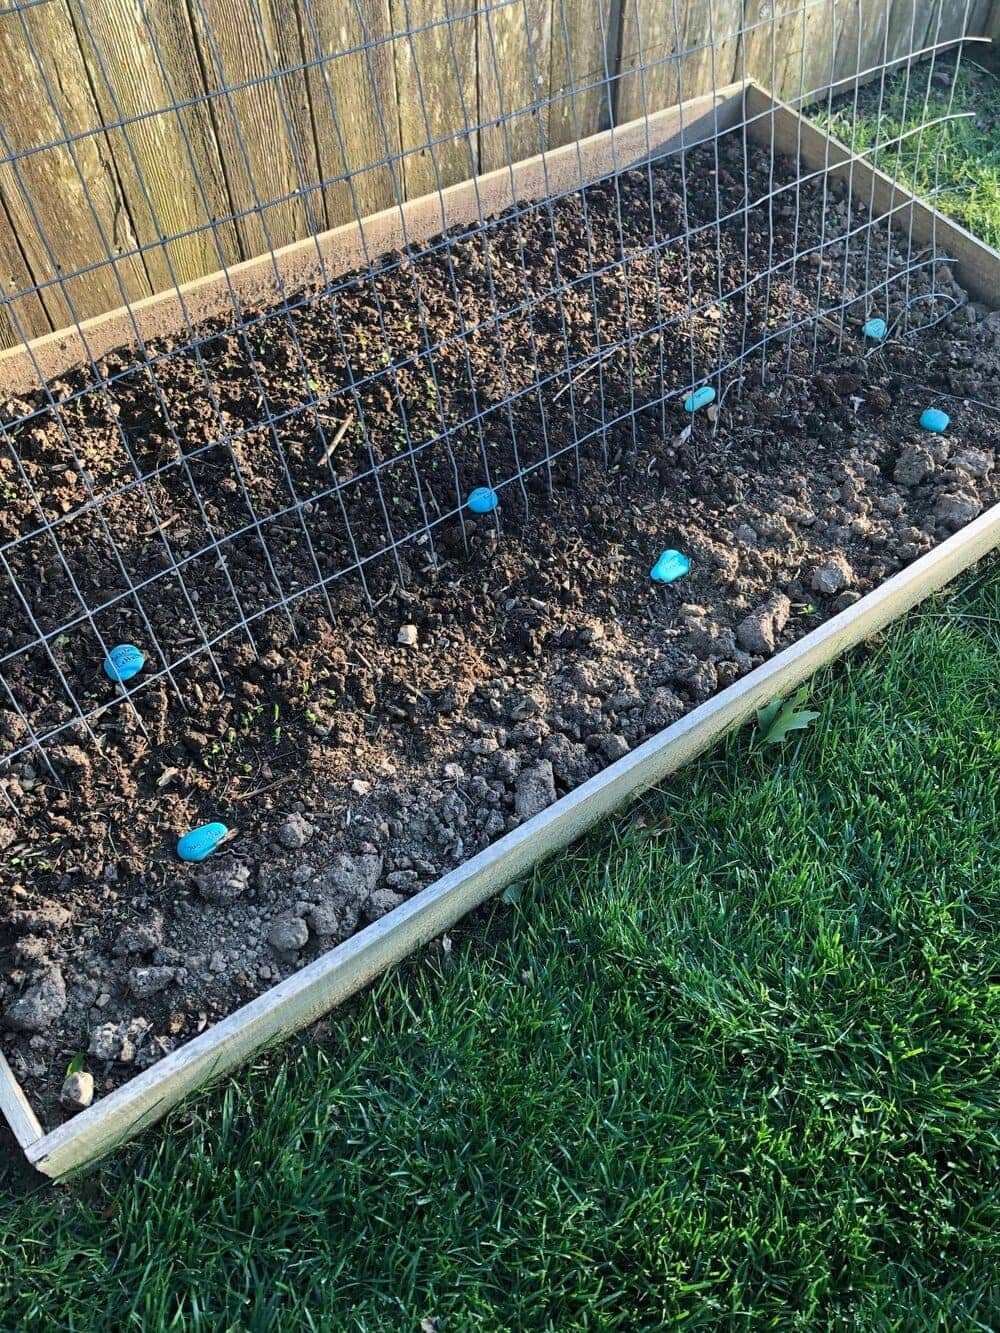 DIY blue plant markers scattered around the garden beds, marking plants